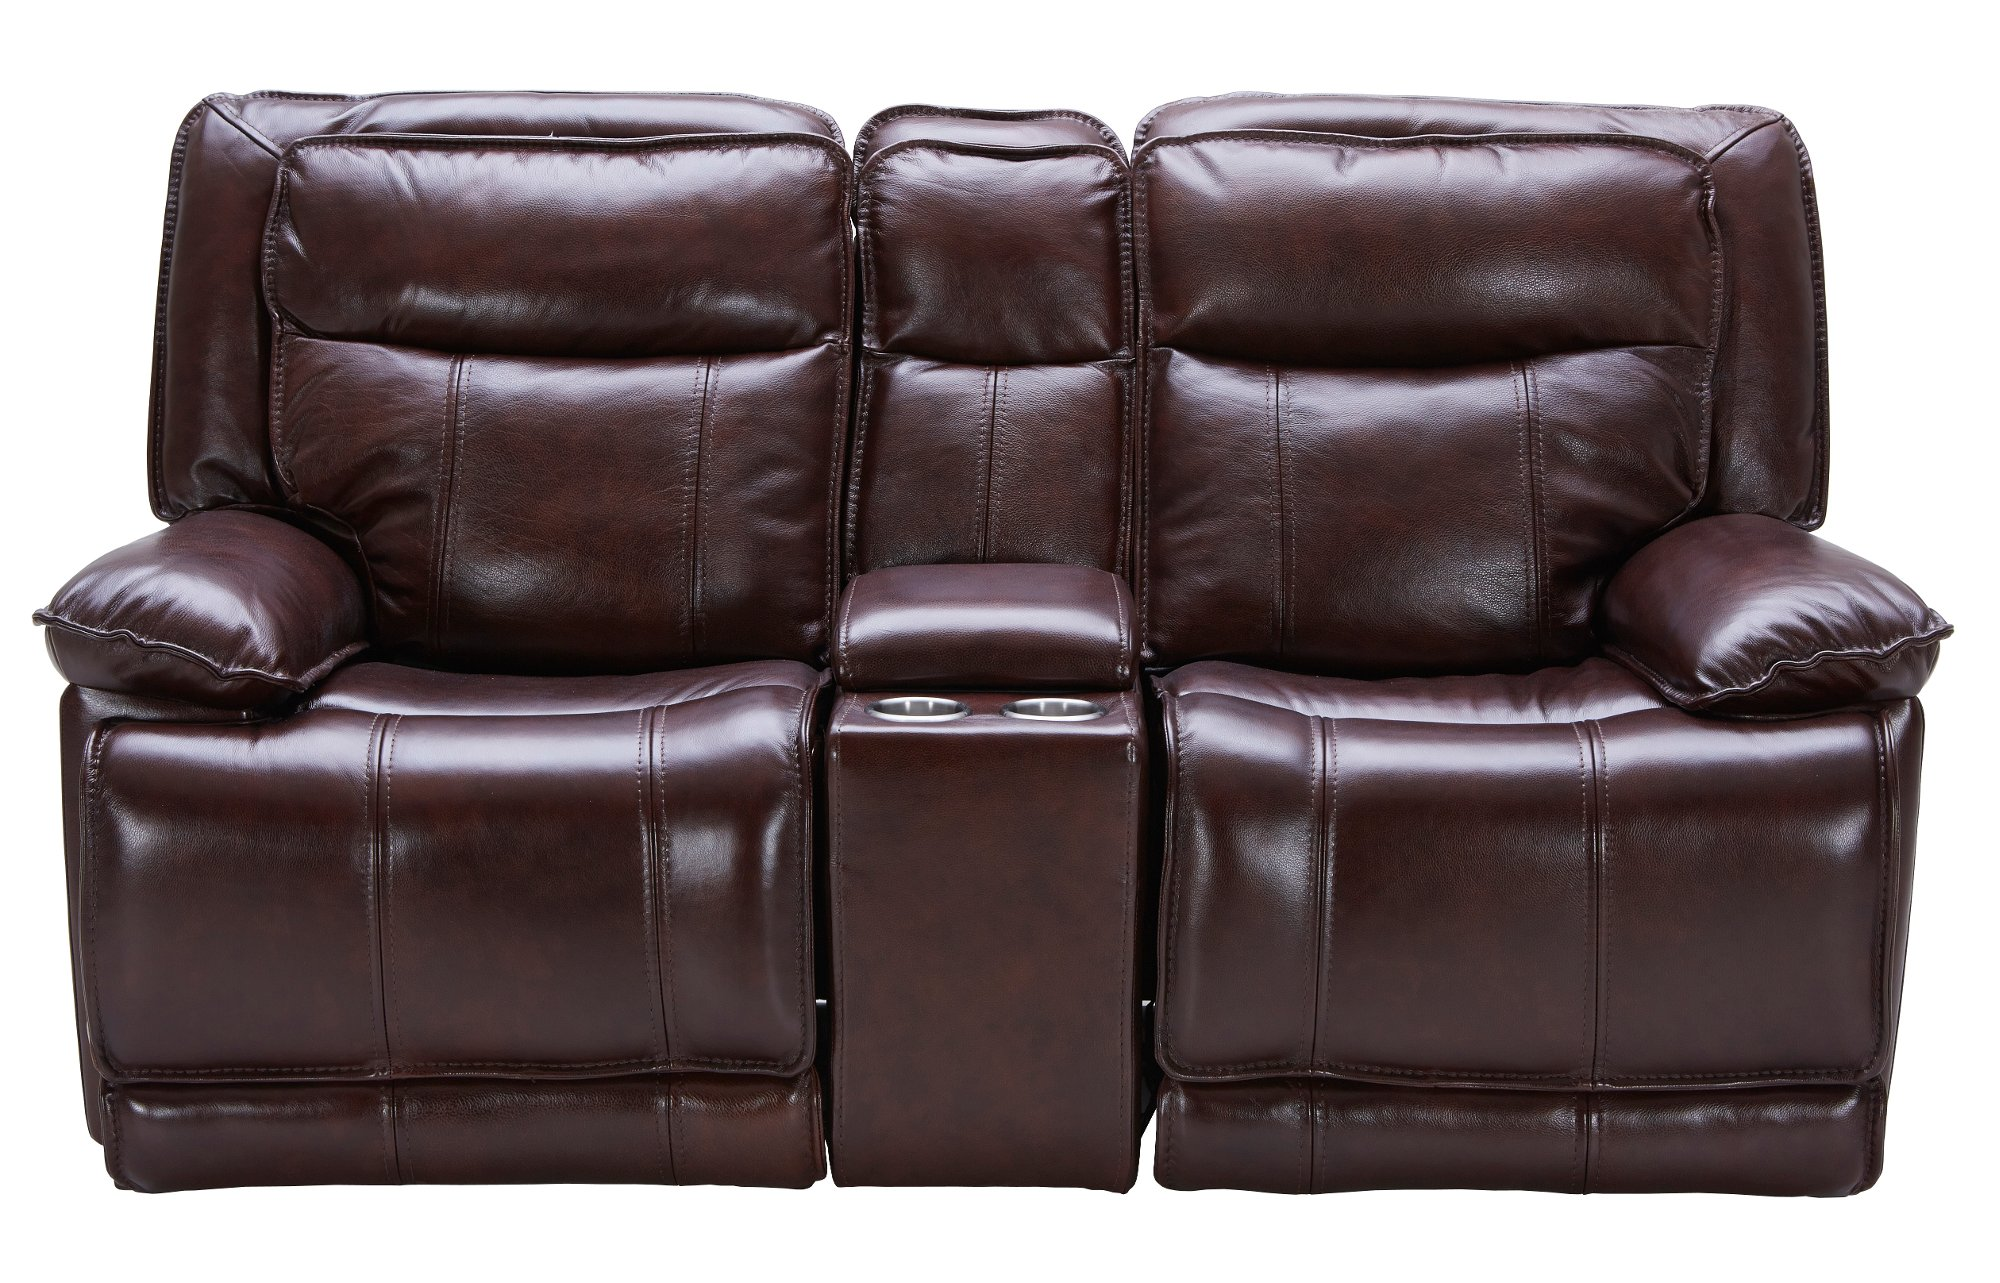 Bordeaux Burgundy Leather Match Power Reclining Sofa Loveseat K Motion Rc Willey Furniture